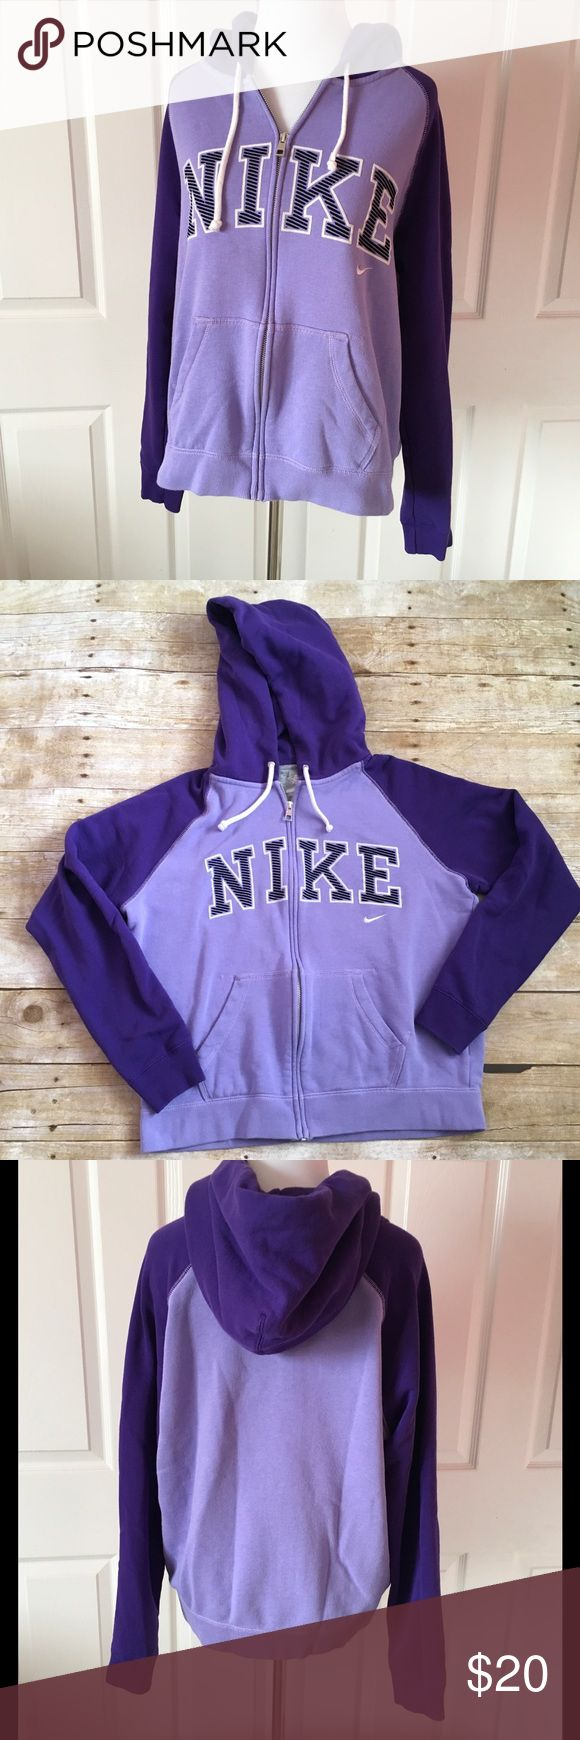 "Nike purple zip up hoodie ❤️Condition: good used ❤️Brand: Nike ❤️Size: women's large ❤️Materials: 80% cotton/20% polyester ❤️Measurements: --laying flat--      Waist 19""      Bust 21""      Sleeve length 20"" armpit to leave hem      Total length 22"" ❤️Notes: 💕💕Bundle and save!!!!💕💕 💕💕All reasonable offers are considered!!!!!💕💕 Nike Tops Sweatshirts & Hoodies"